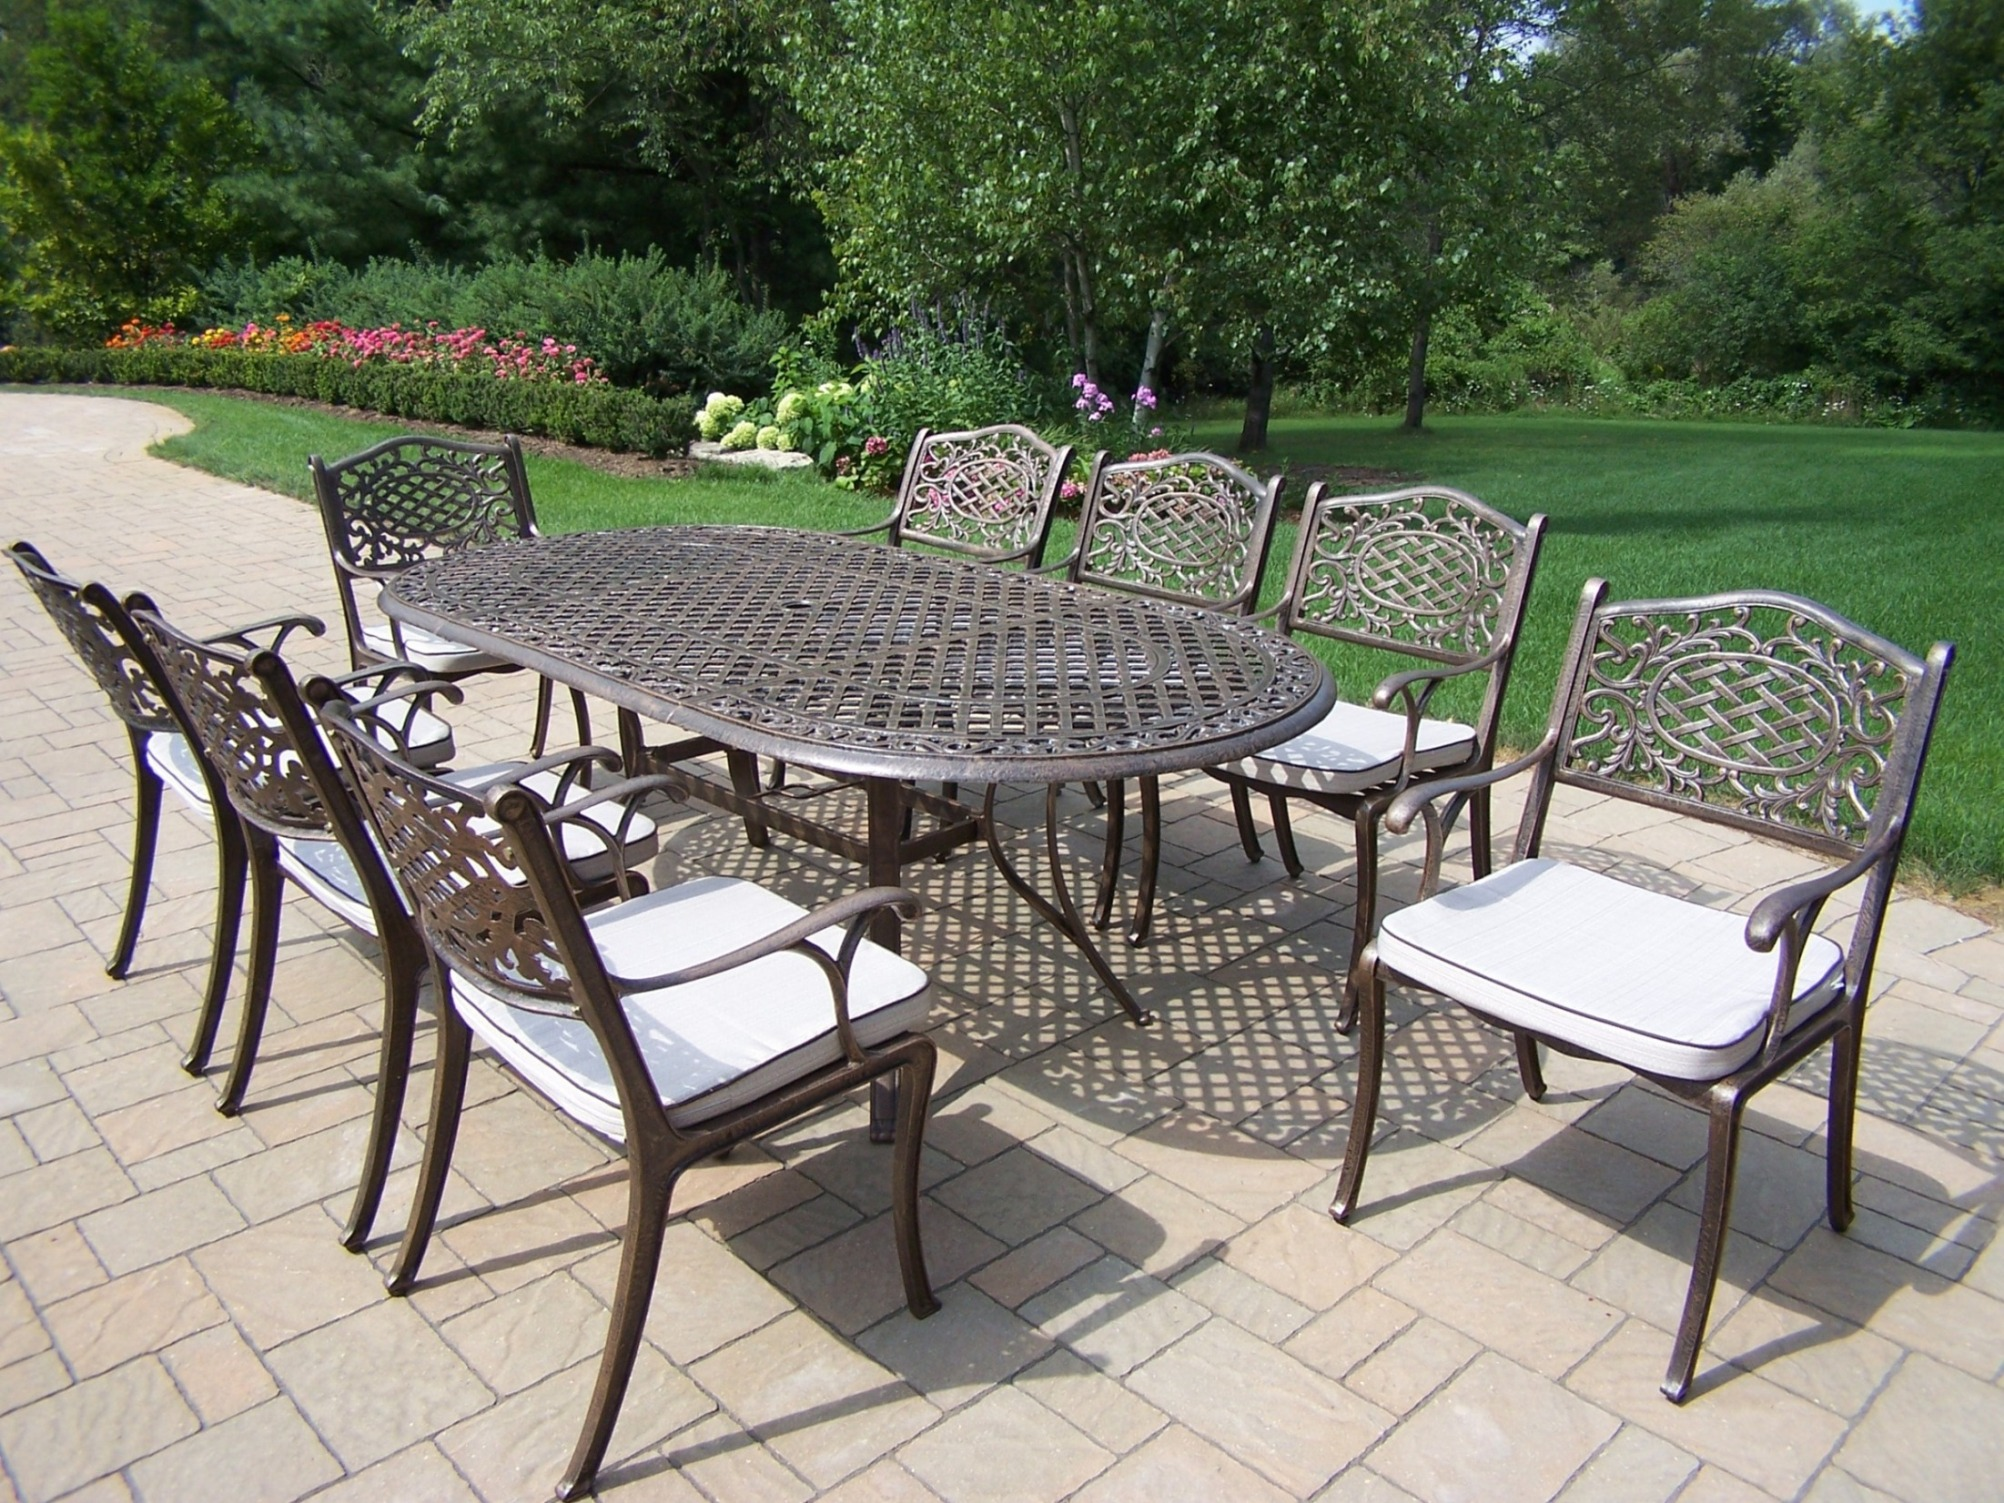 patio chair glides oval cover and sash hire essex oakland living cast aluminum 9 pc dining set w 84